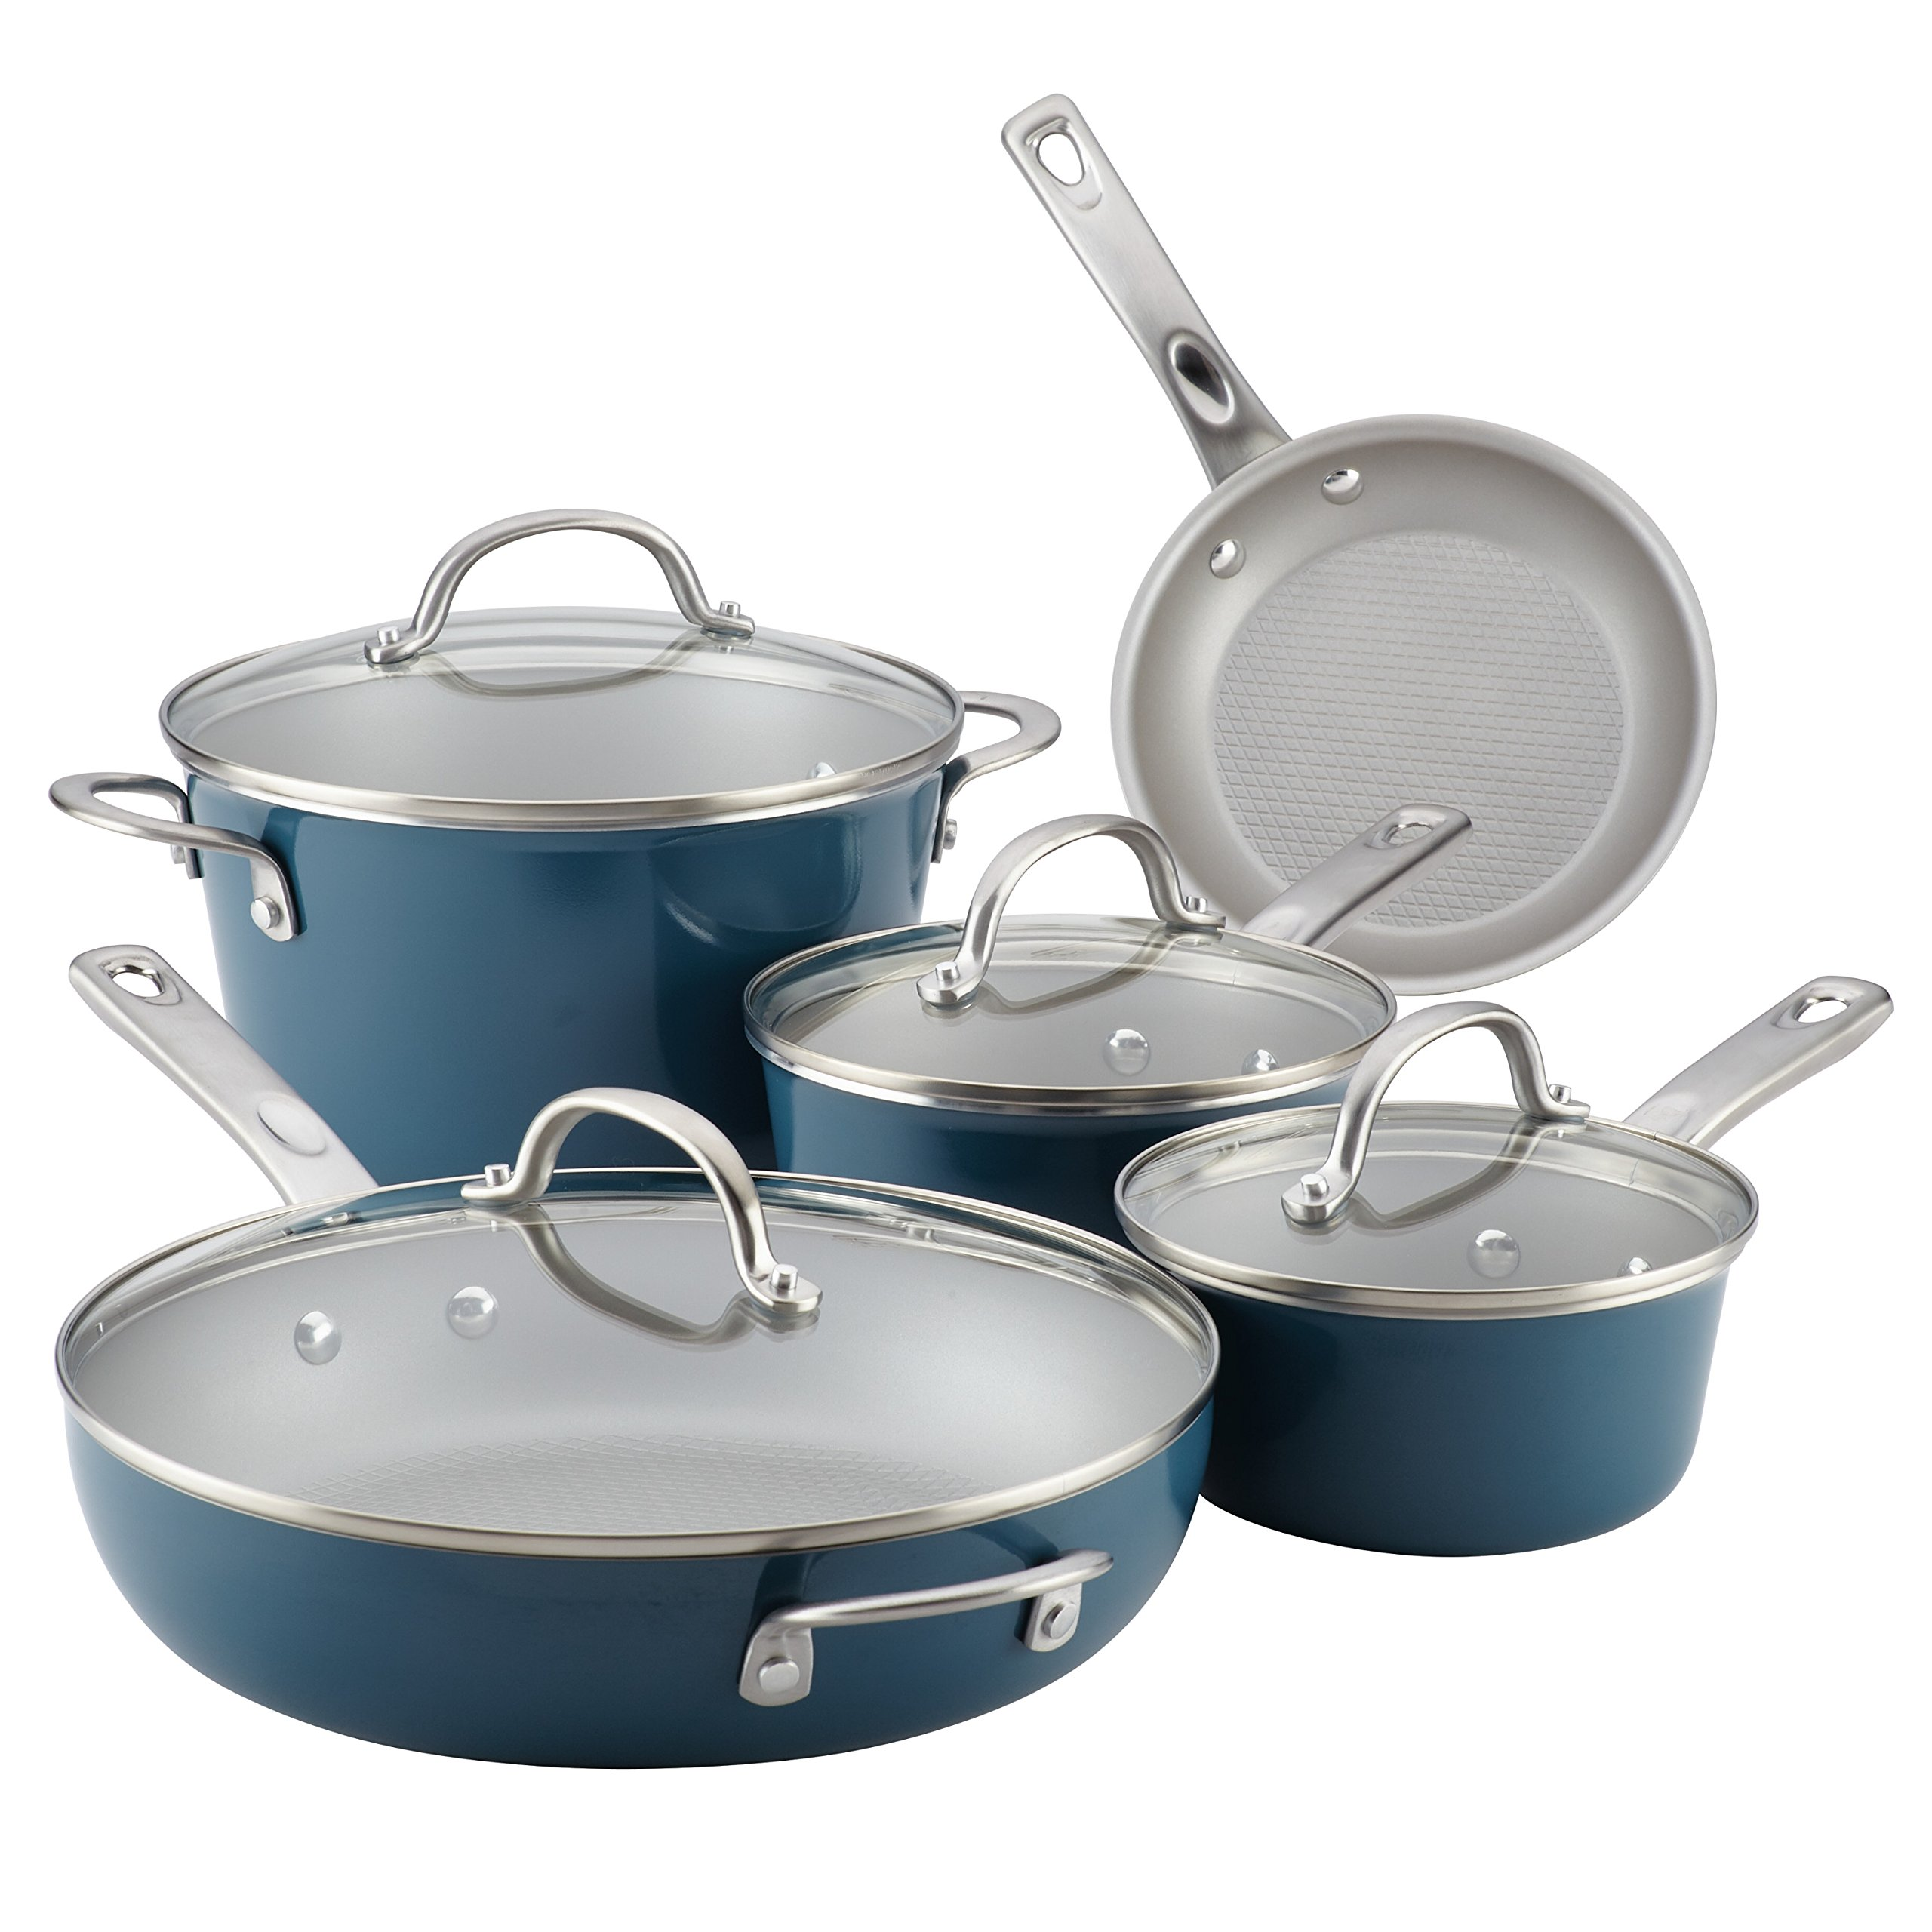 Ayesha Curry Home Collection Porcelain Enamel Nonstick Cookware Set, Twilight Teal, 9-Piece